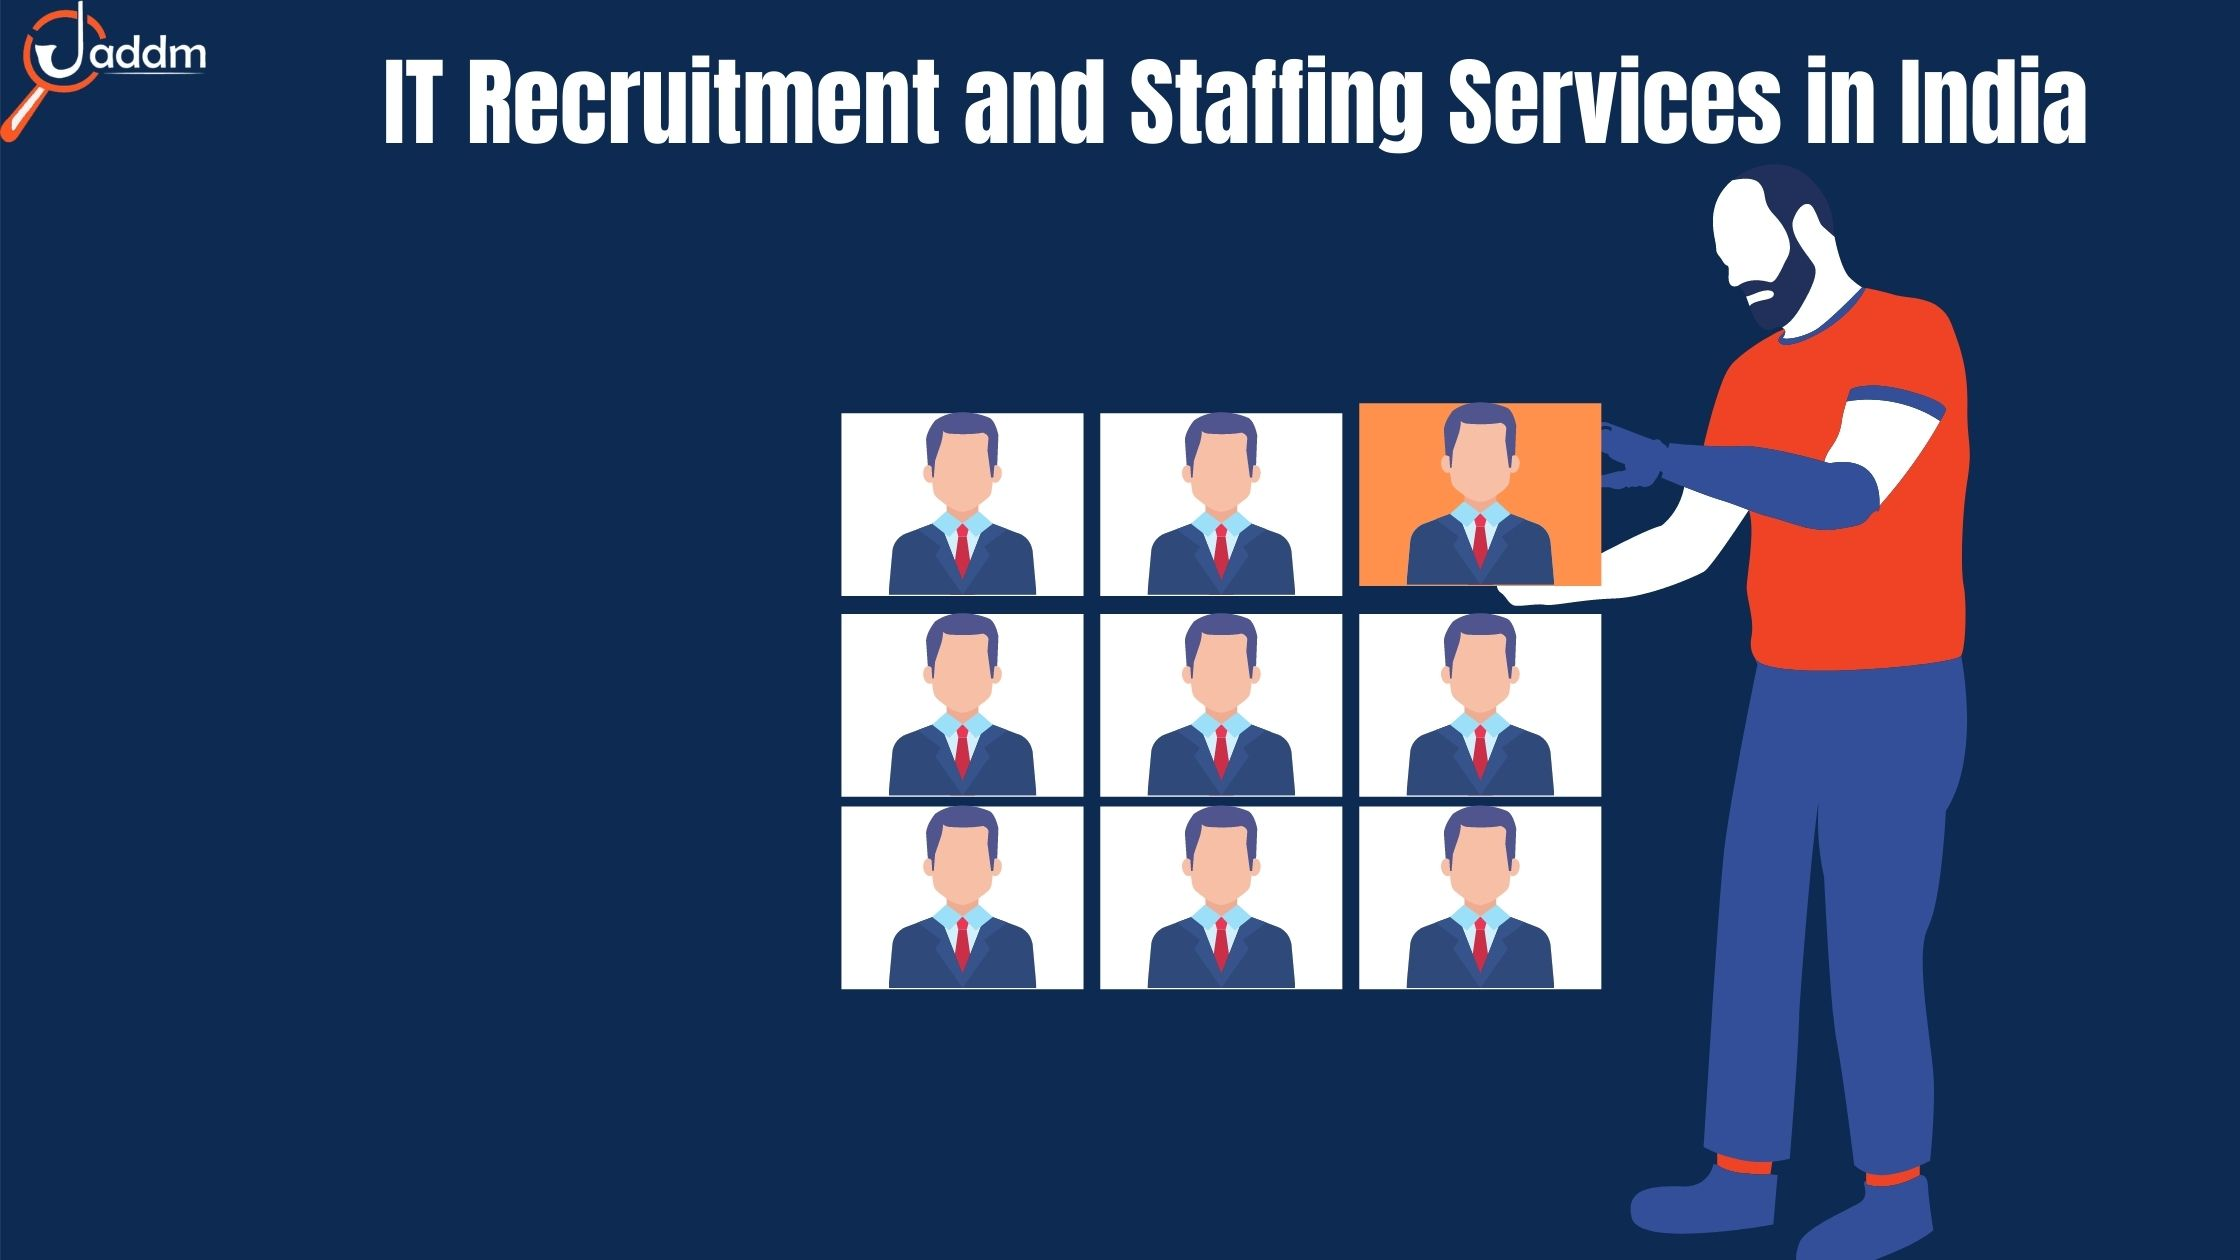 IT Recruitment and Staffing Services in India